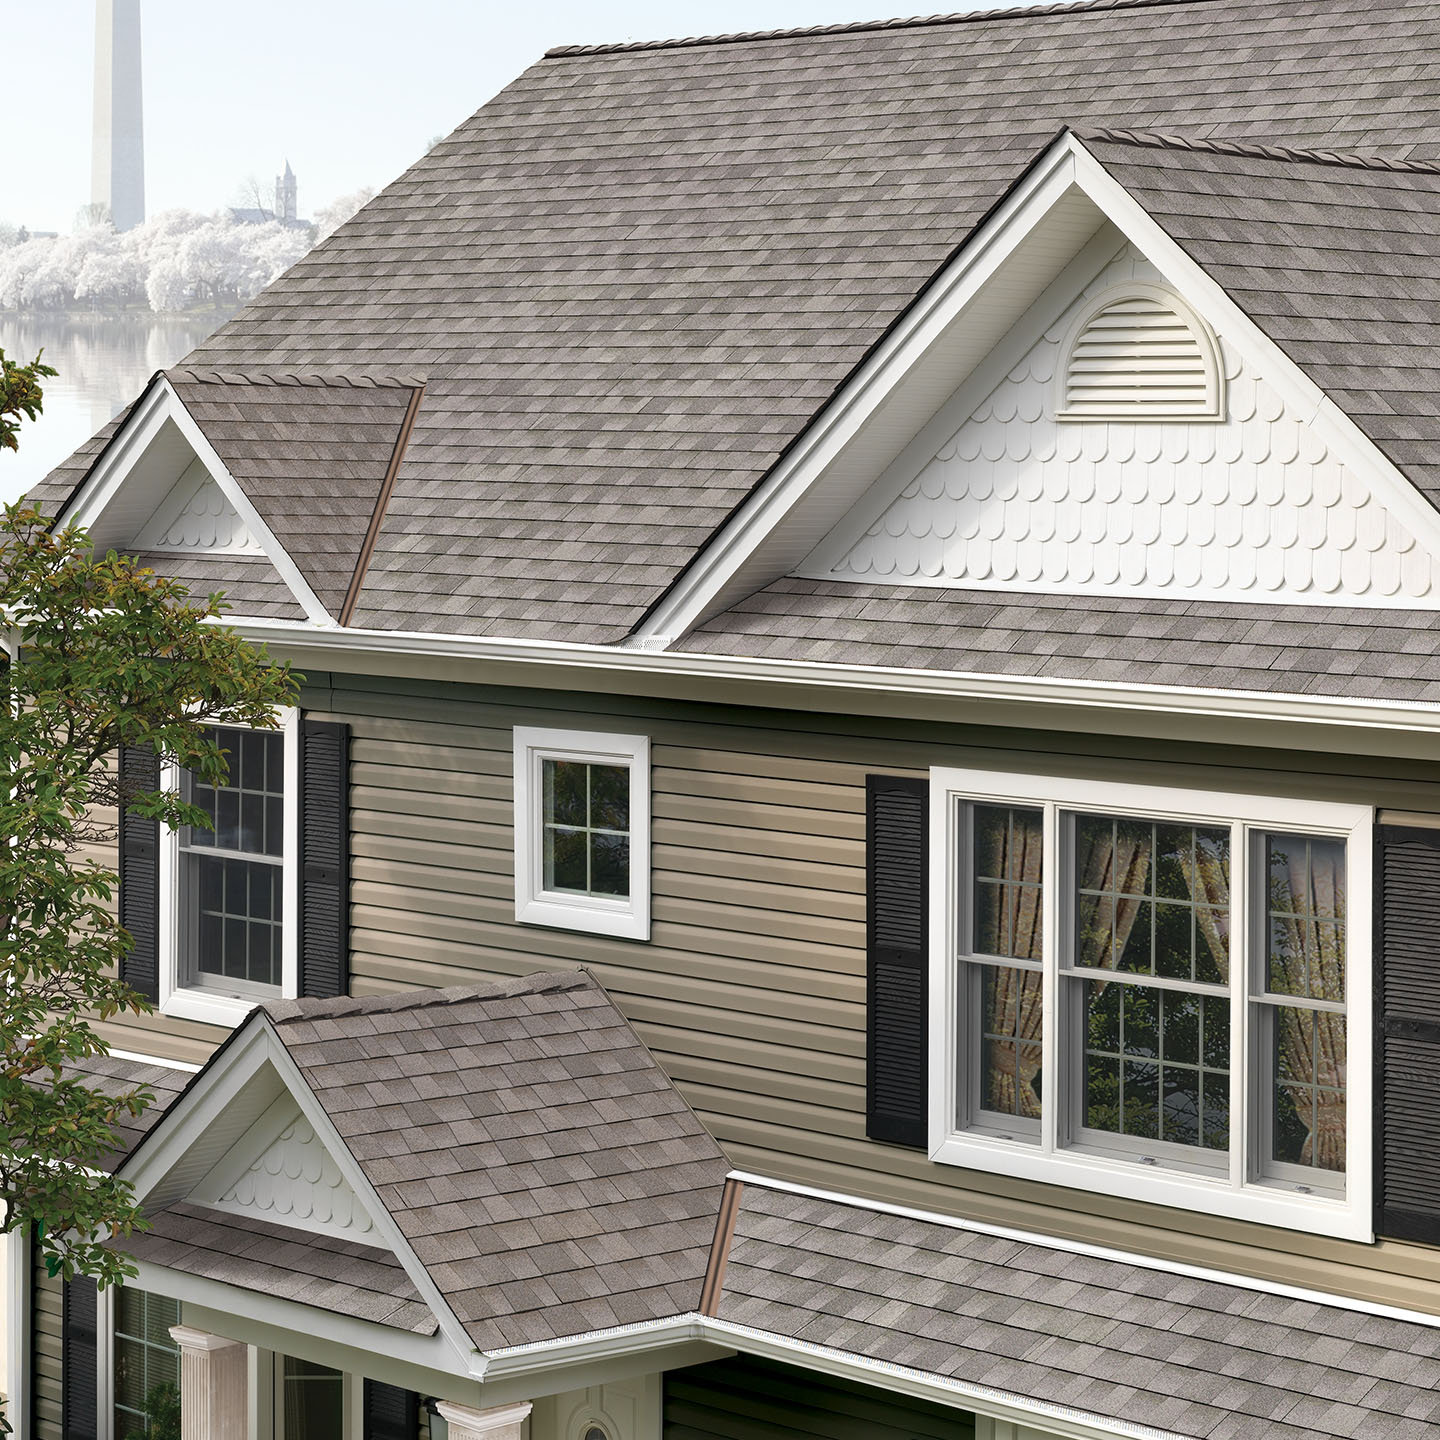 GAF TImberline HD Shingles - Fox Hollow Gray